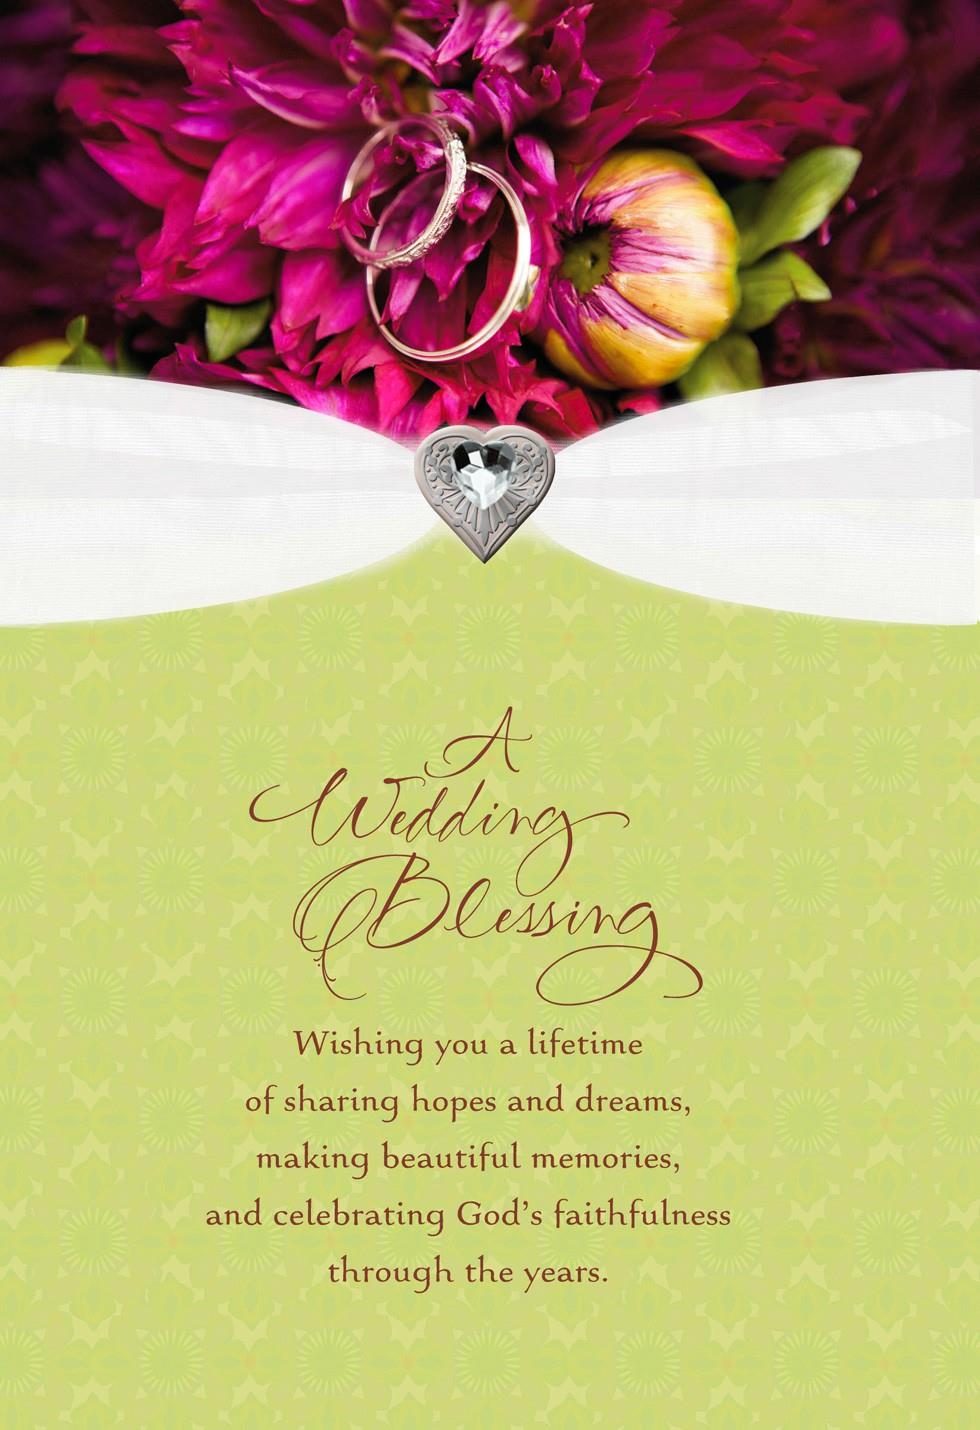 Wedding Blessing Religious Wedding Card Greeting Cards Hallmark